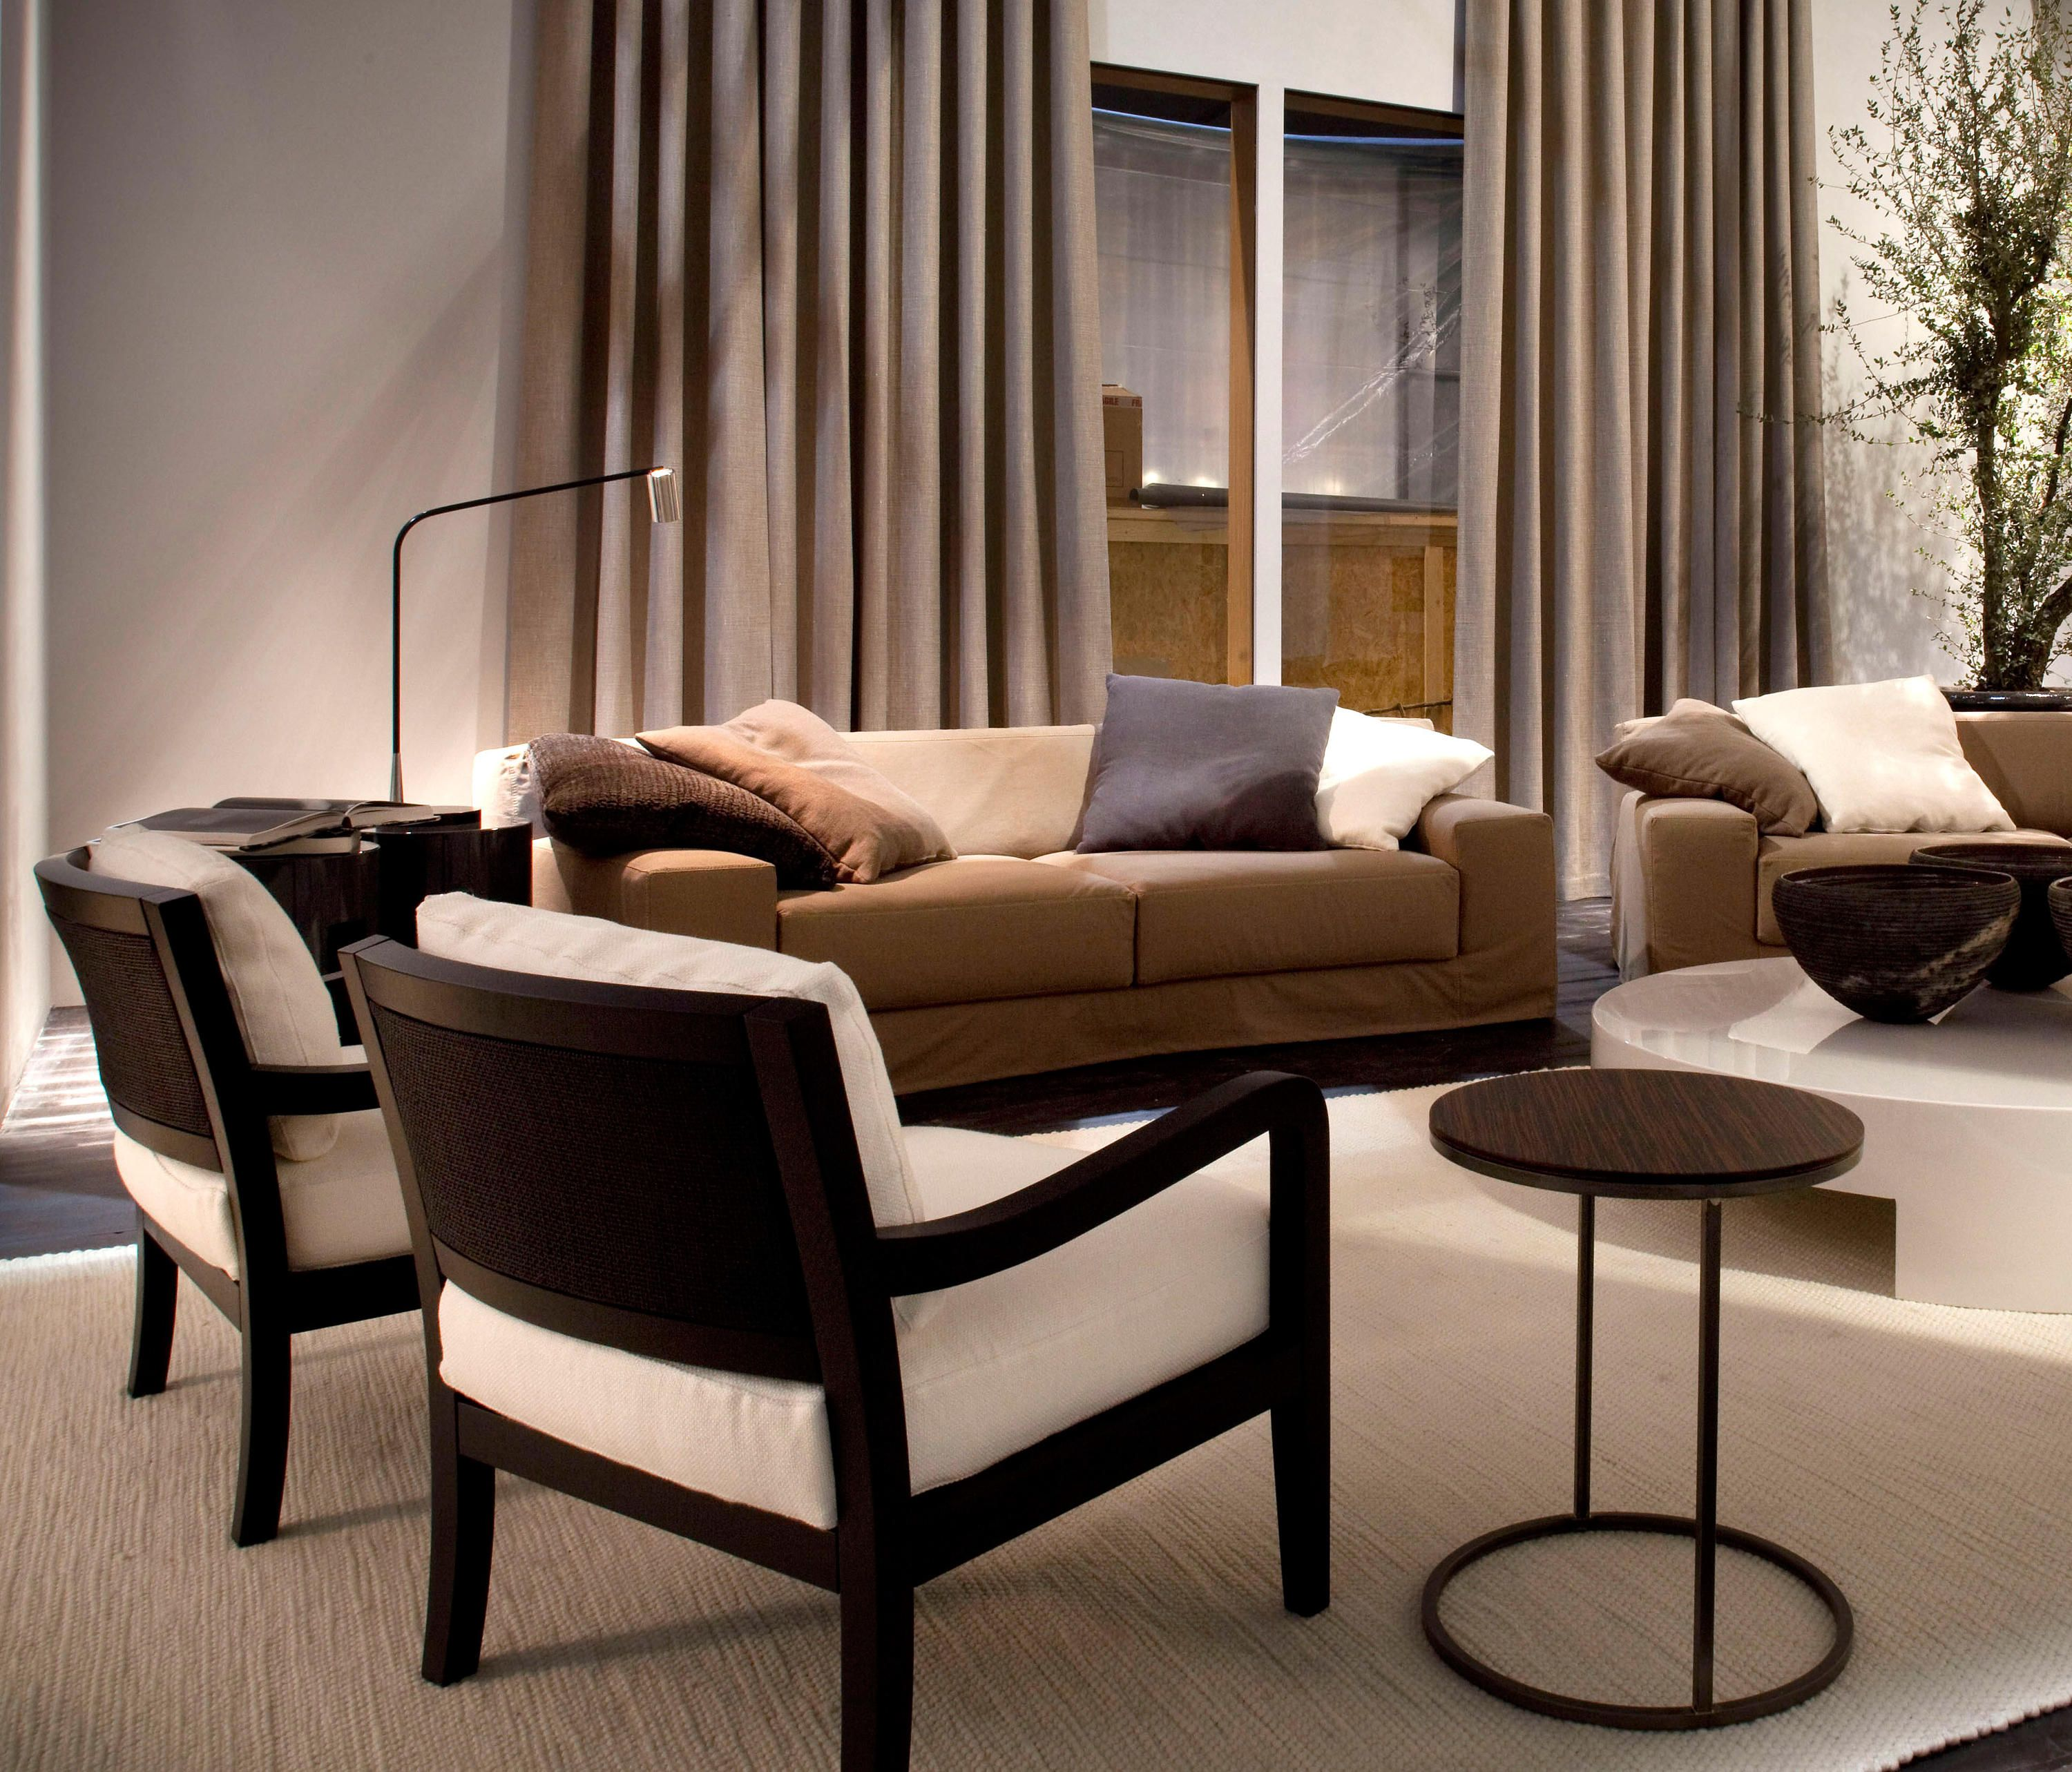 Forrest armchair designer armchairs from meridiani all